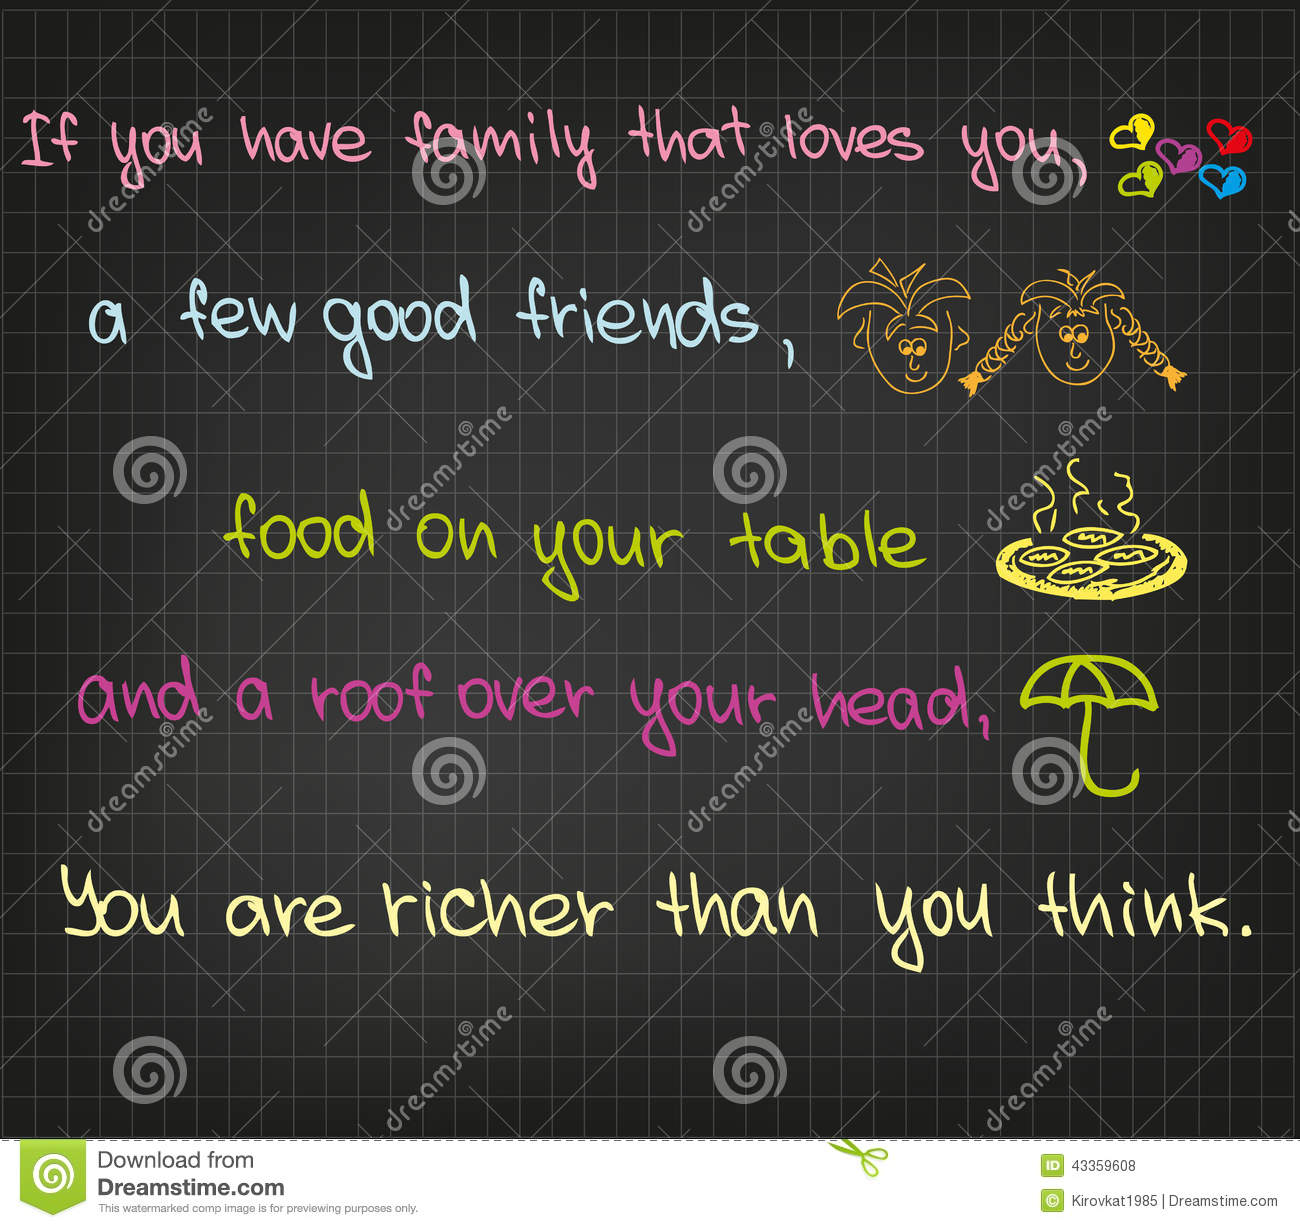 Quotes About Food And Friendship Quotes For Friendship And Food Funny Quotes About Friends And